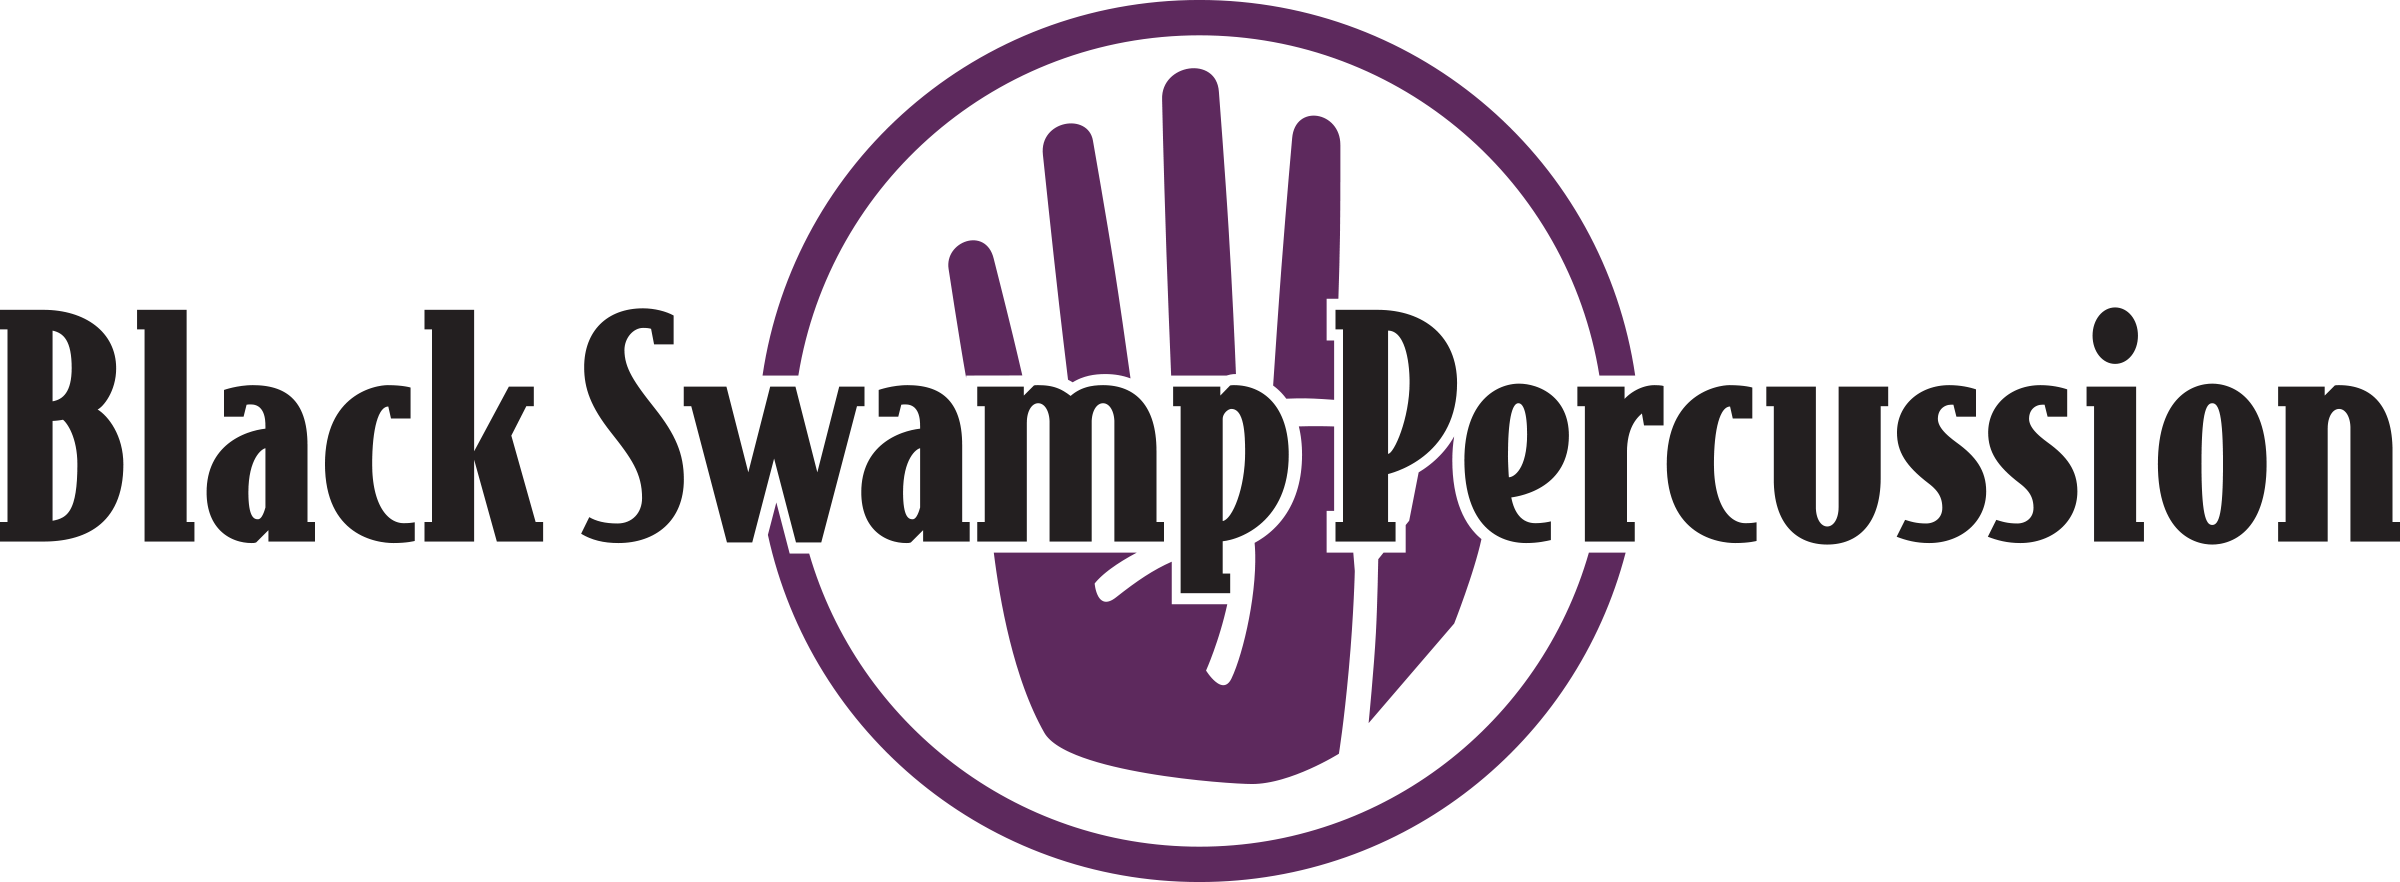 Black_swamp_percussion_logo_color